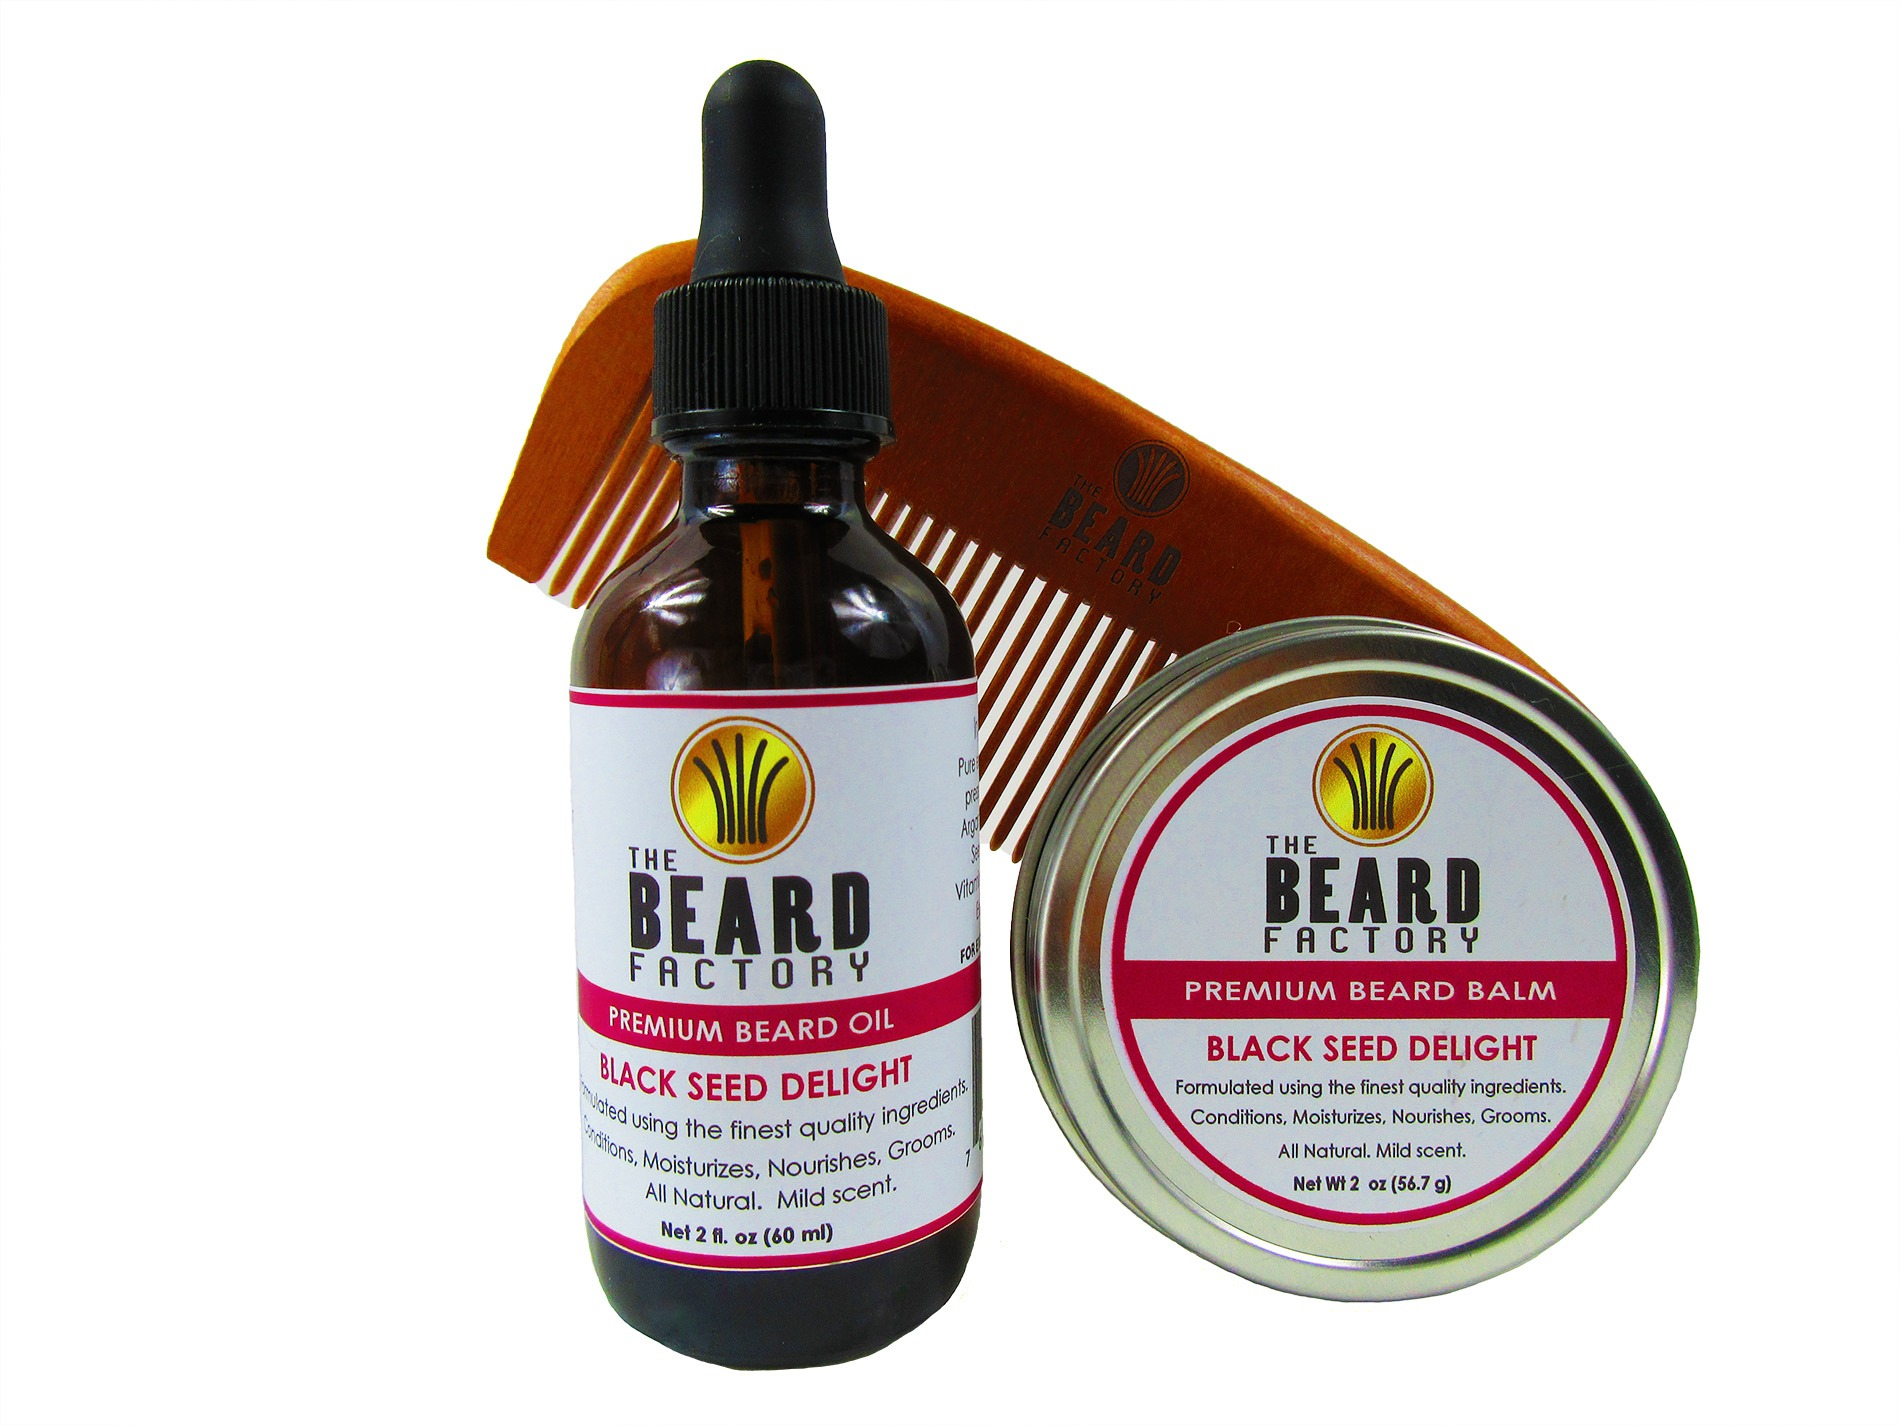 Black Seed Delight Beard Combo Kit